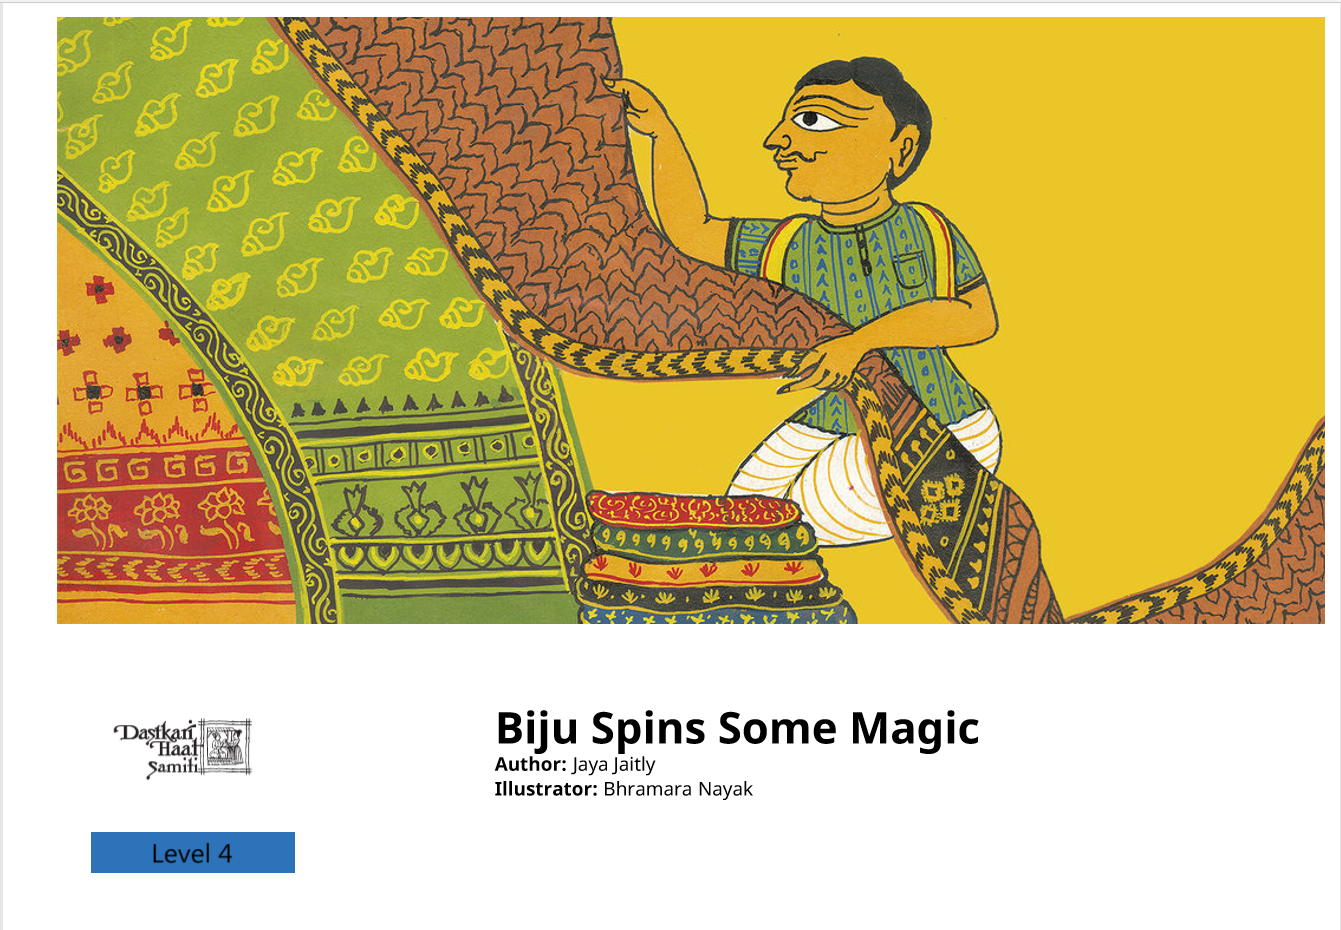 Biju spins some magic